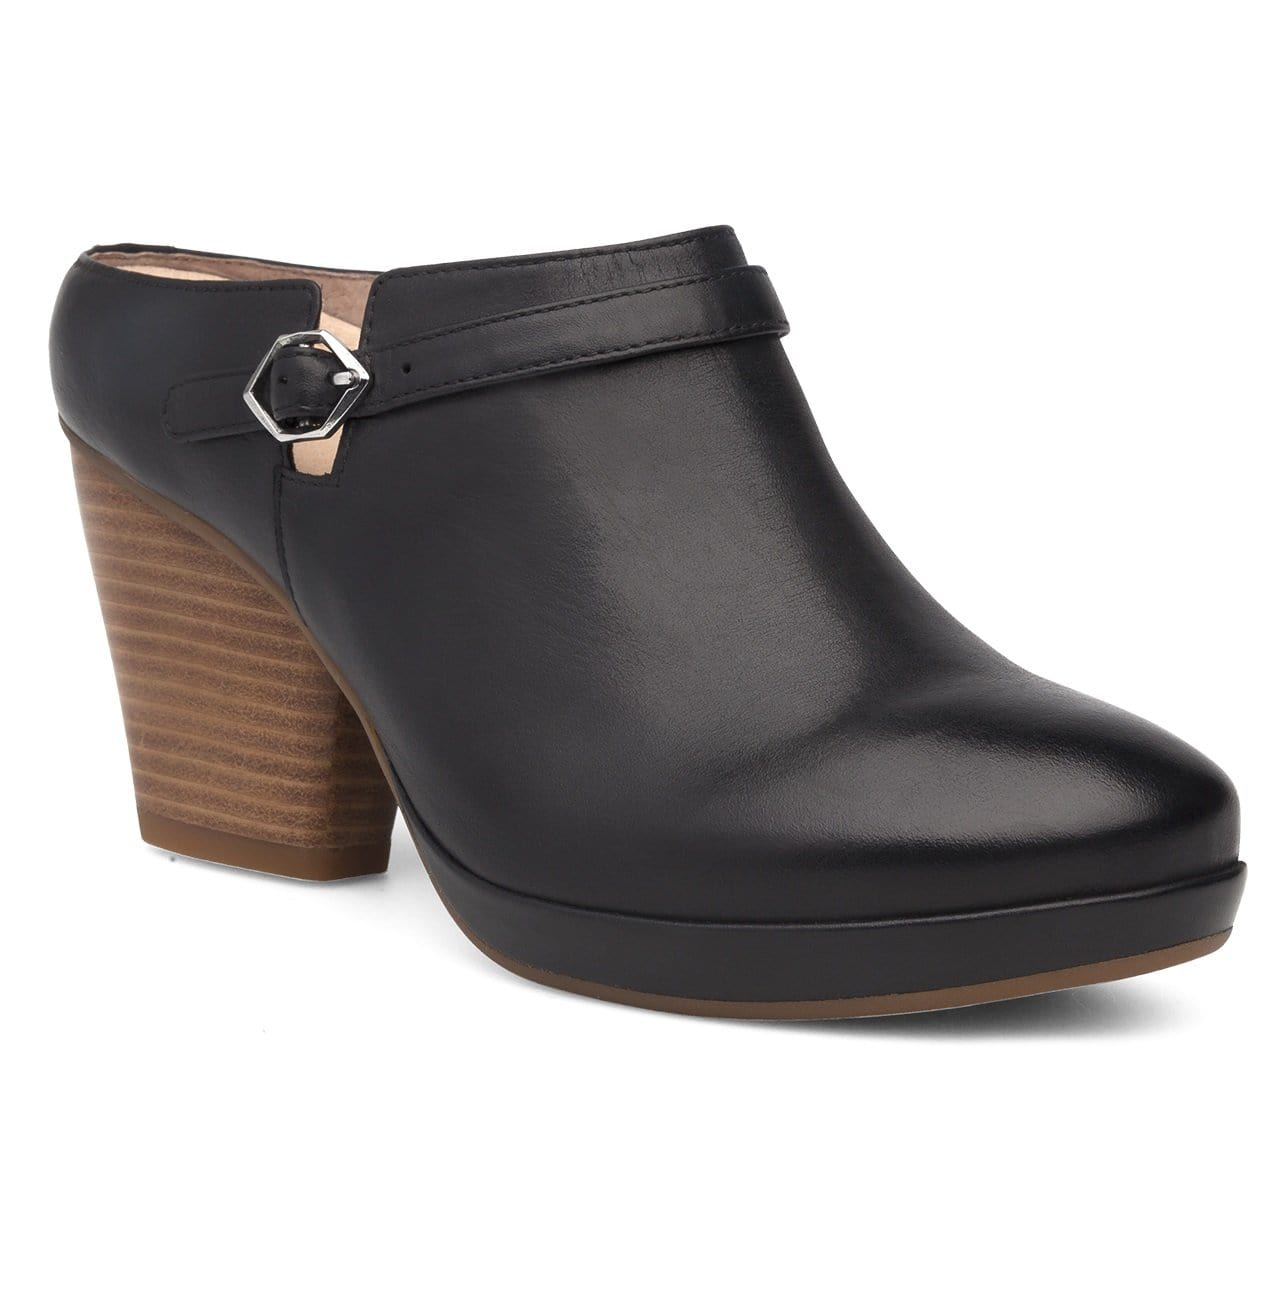 Dansko Malissa | Women's Leather Slip On Platform Heel Bootie | Simons